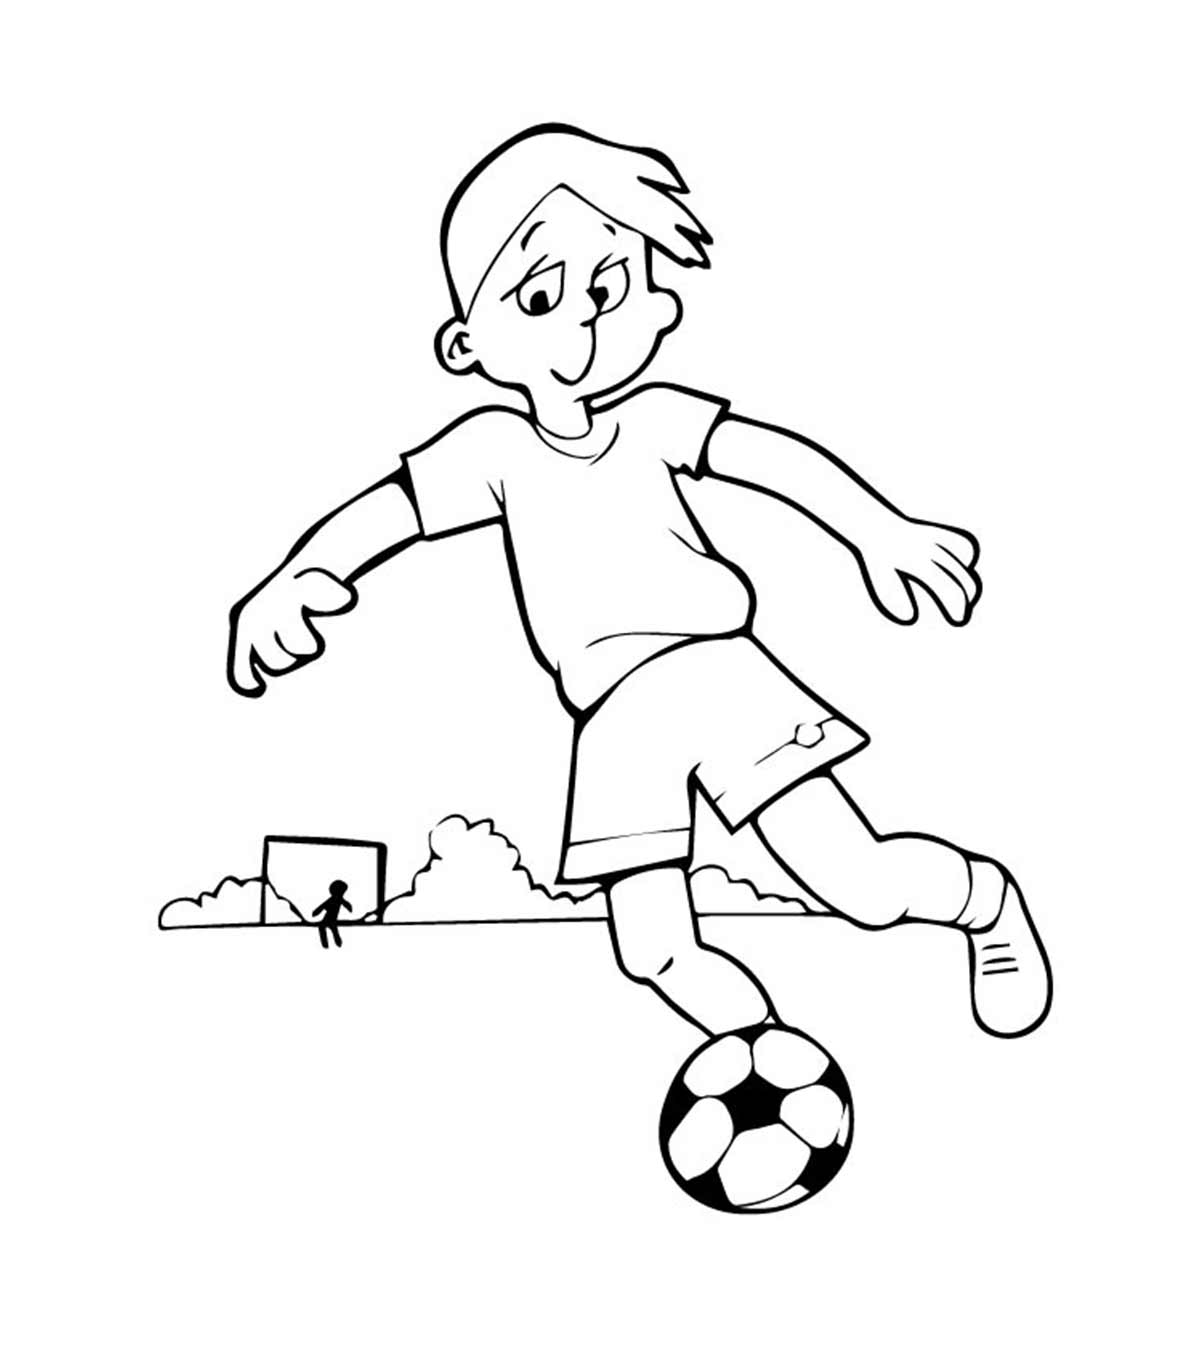 - Soccer Ball Coloring Pages - Free Printables - MomJunction